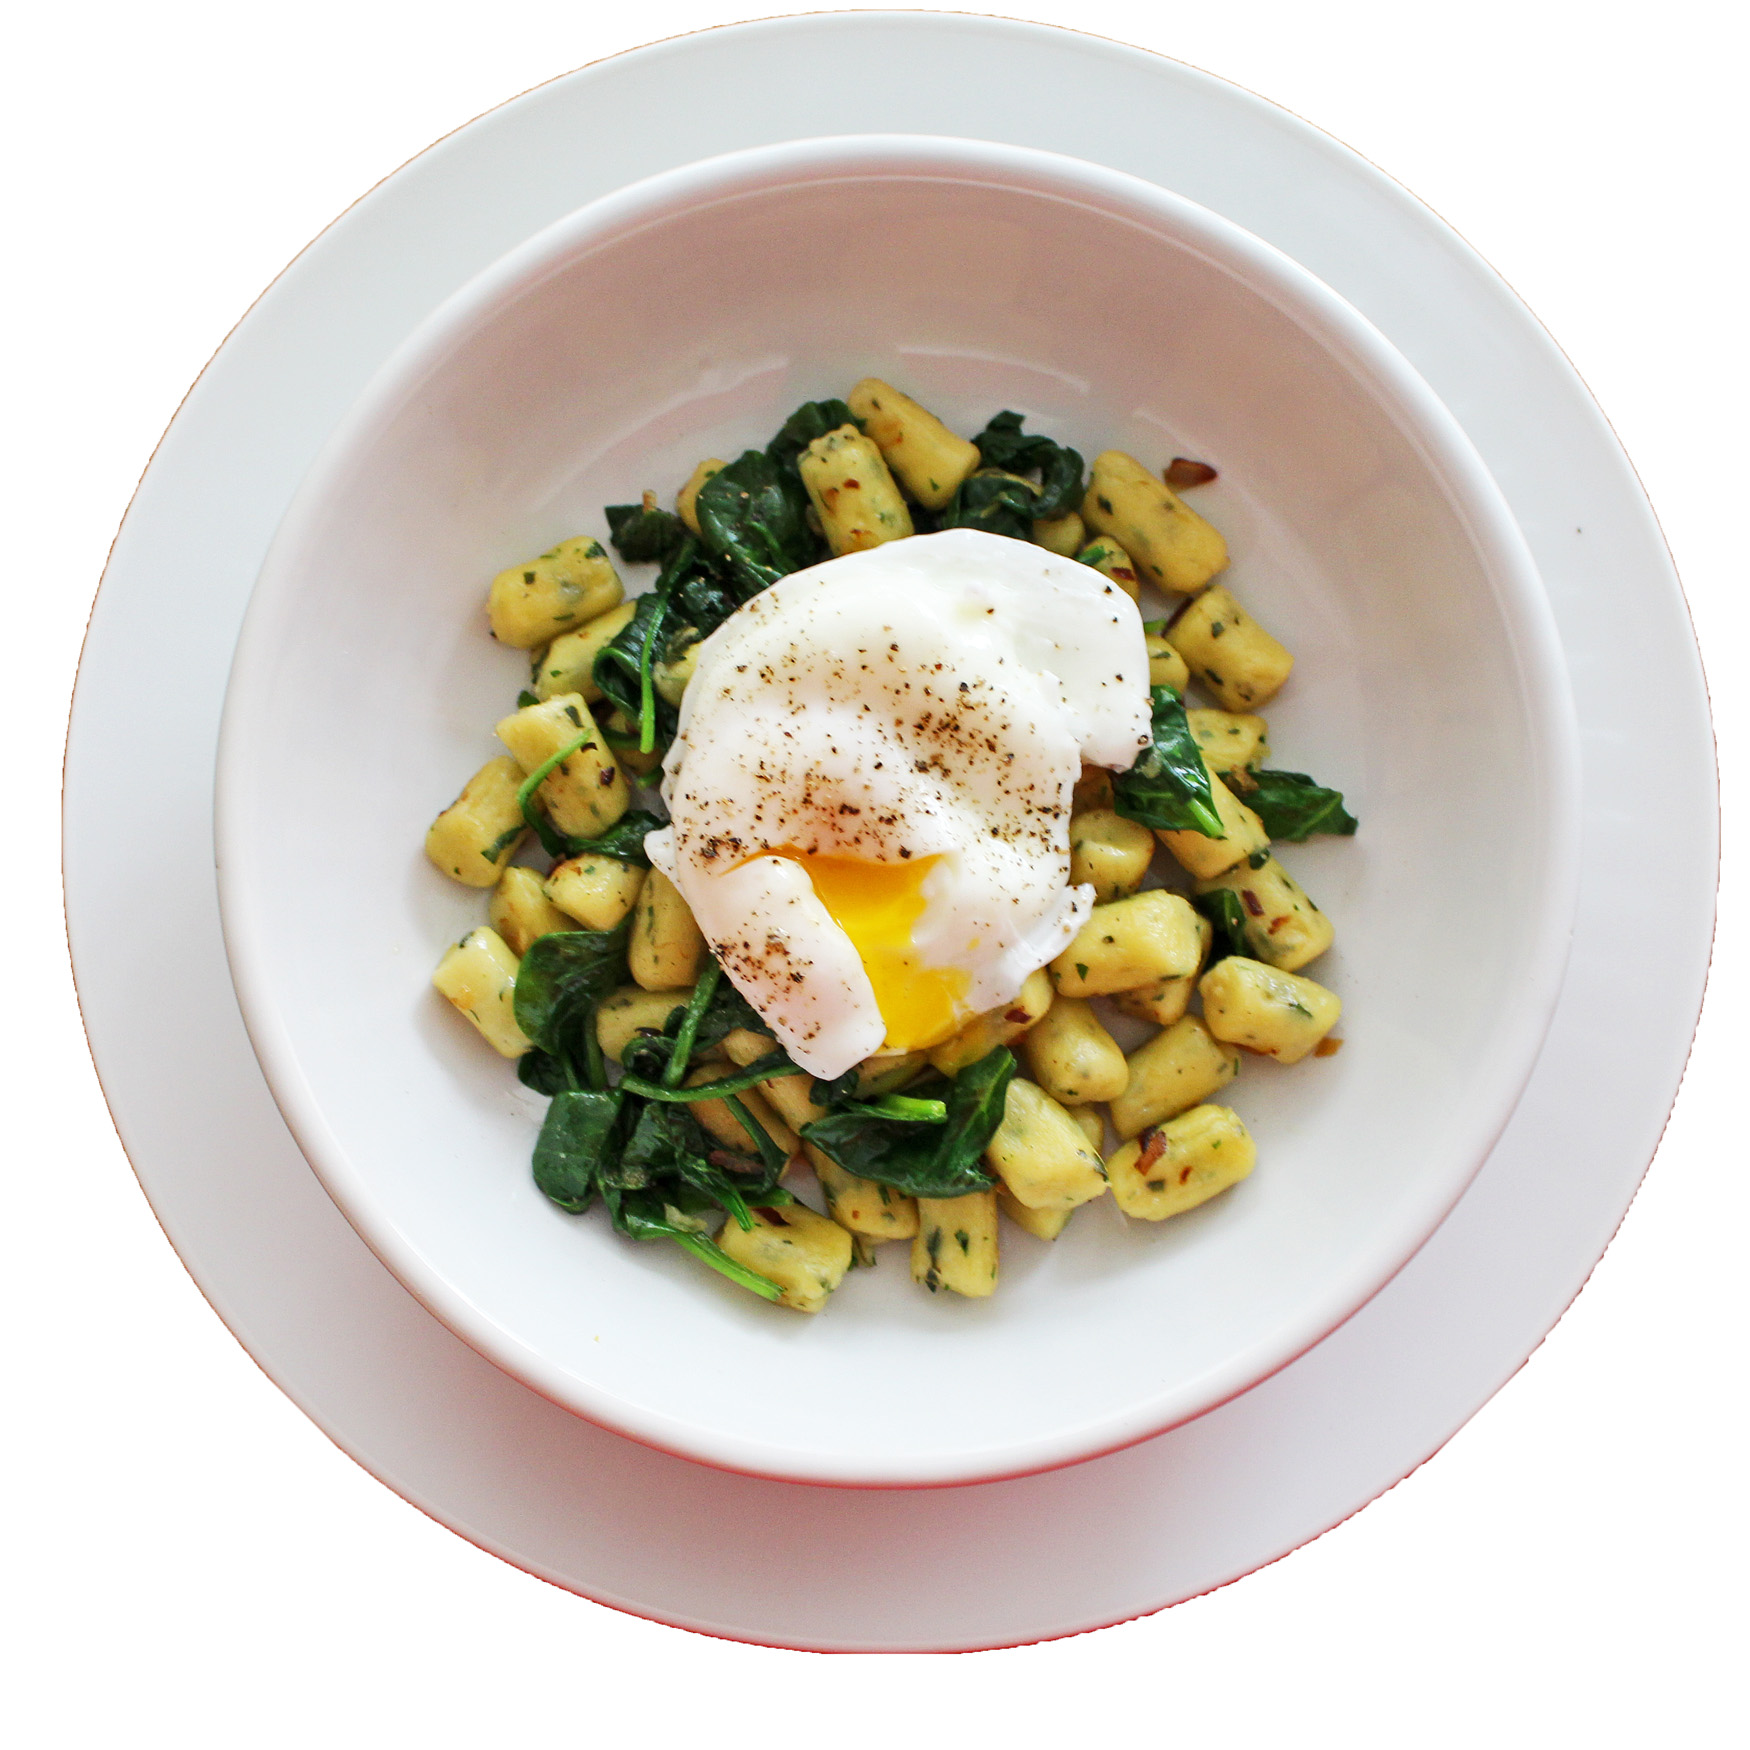 Parisienne Gnocchi with Spinach, Onions and Poached Eggs 5. Making ...